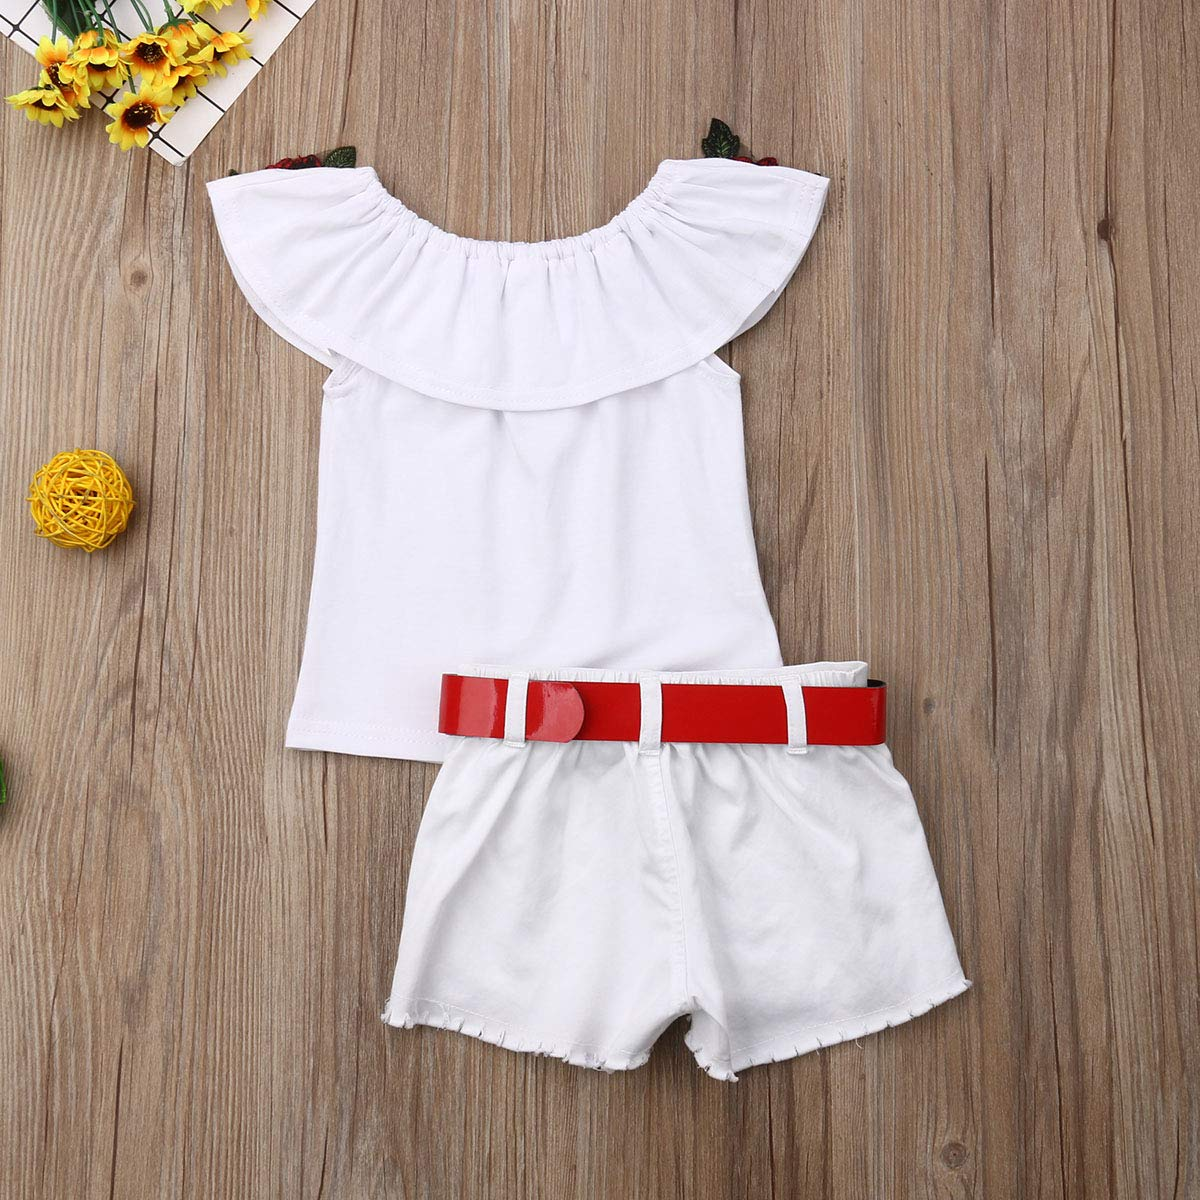 Toddler Kids Clothing Baby Girls Cute Ruffle Flower Vest Tank Top+Denim Ripped Shorts Pants 2Pcs Outfits Clothes Set